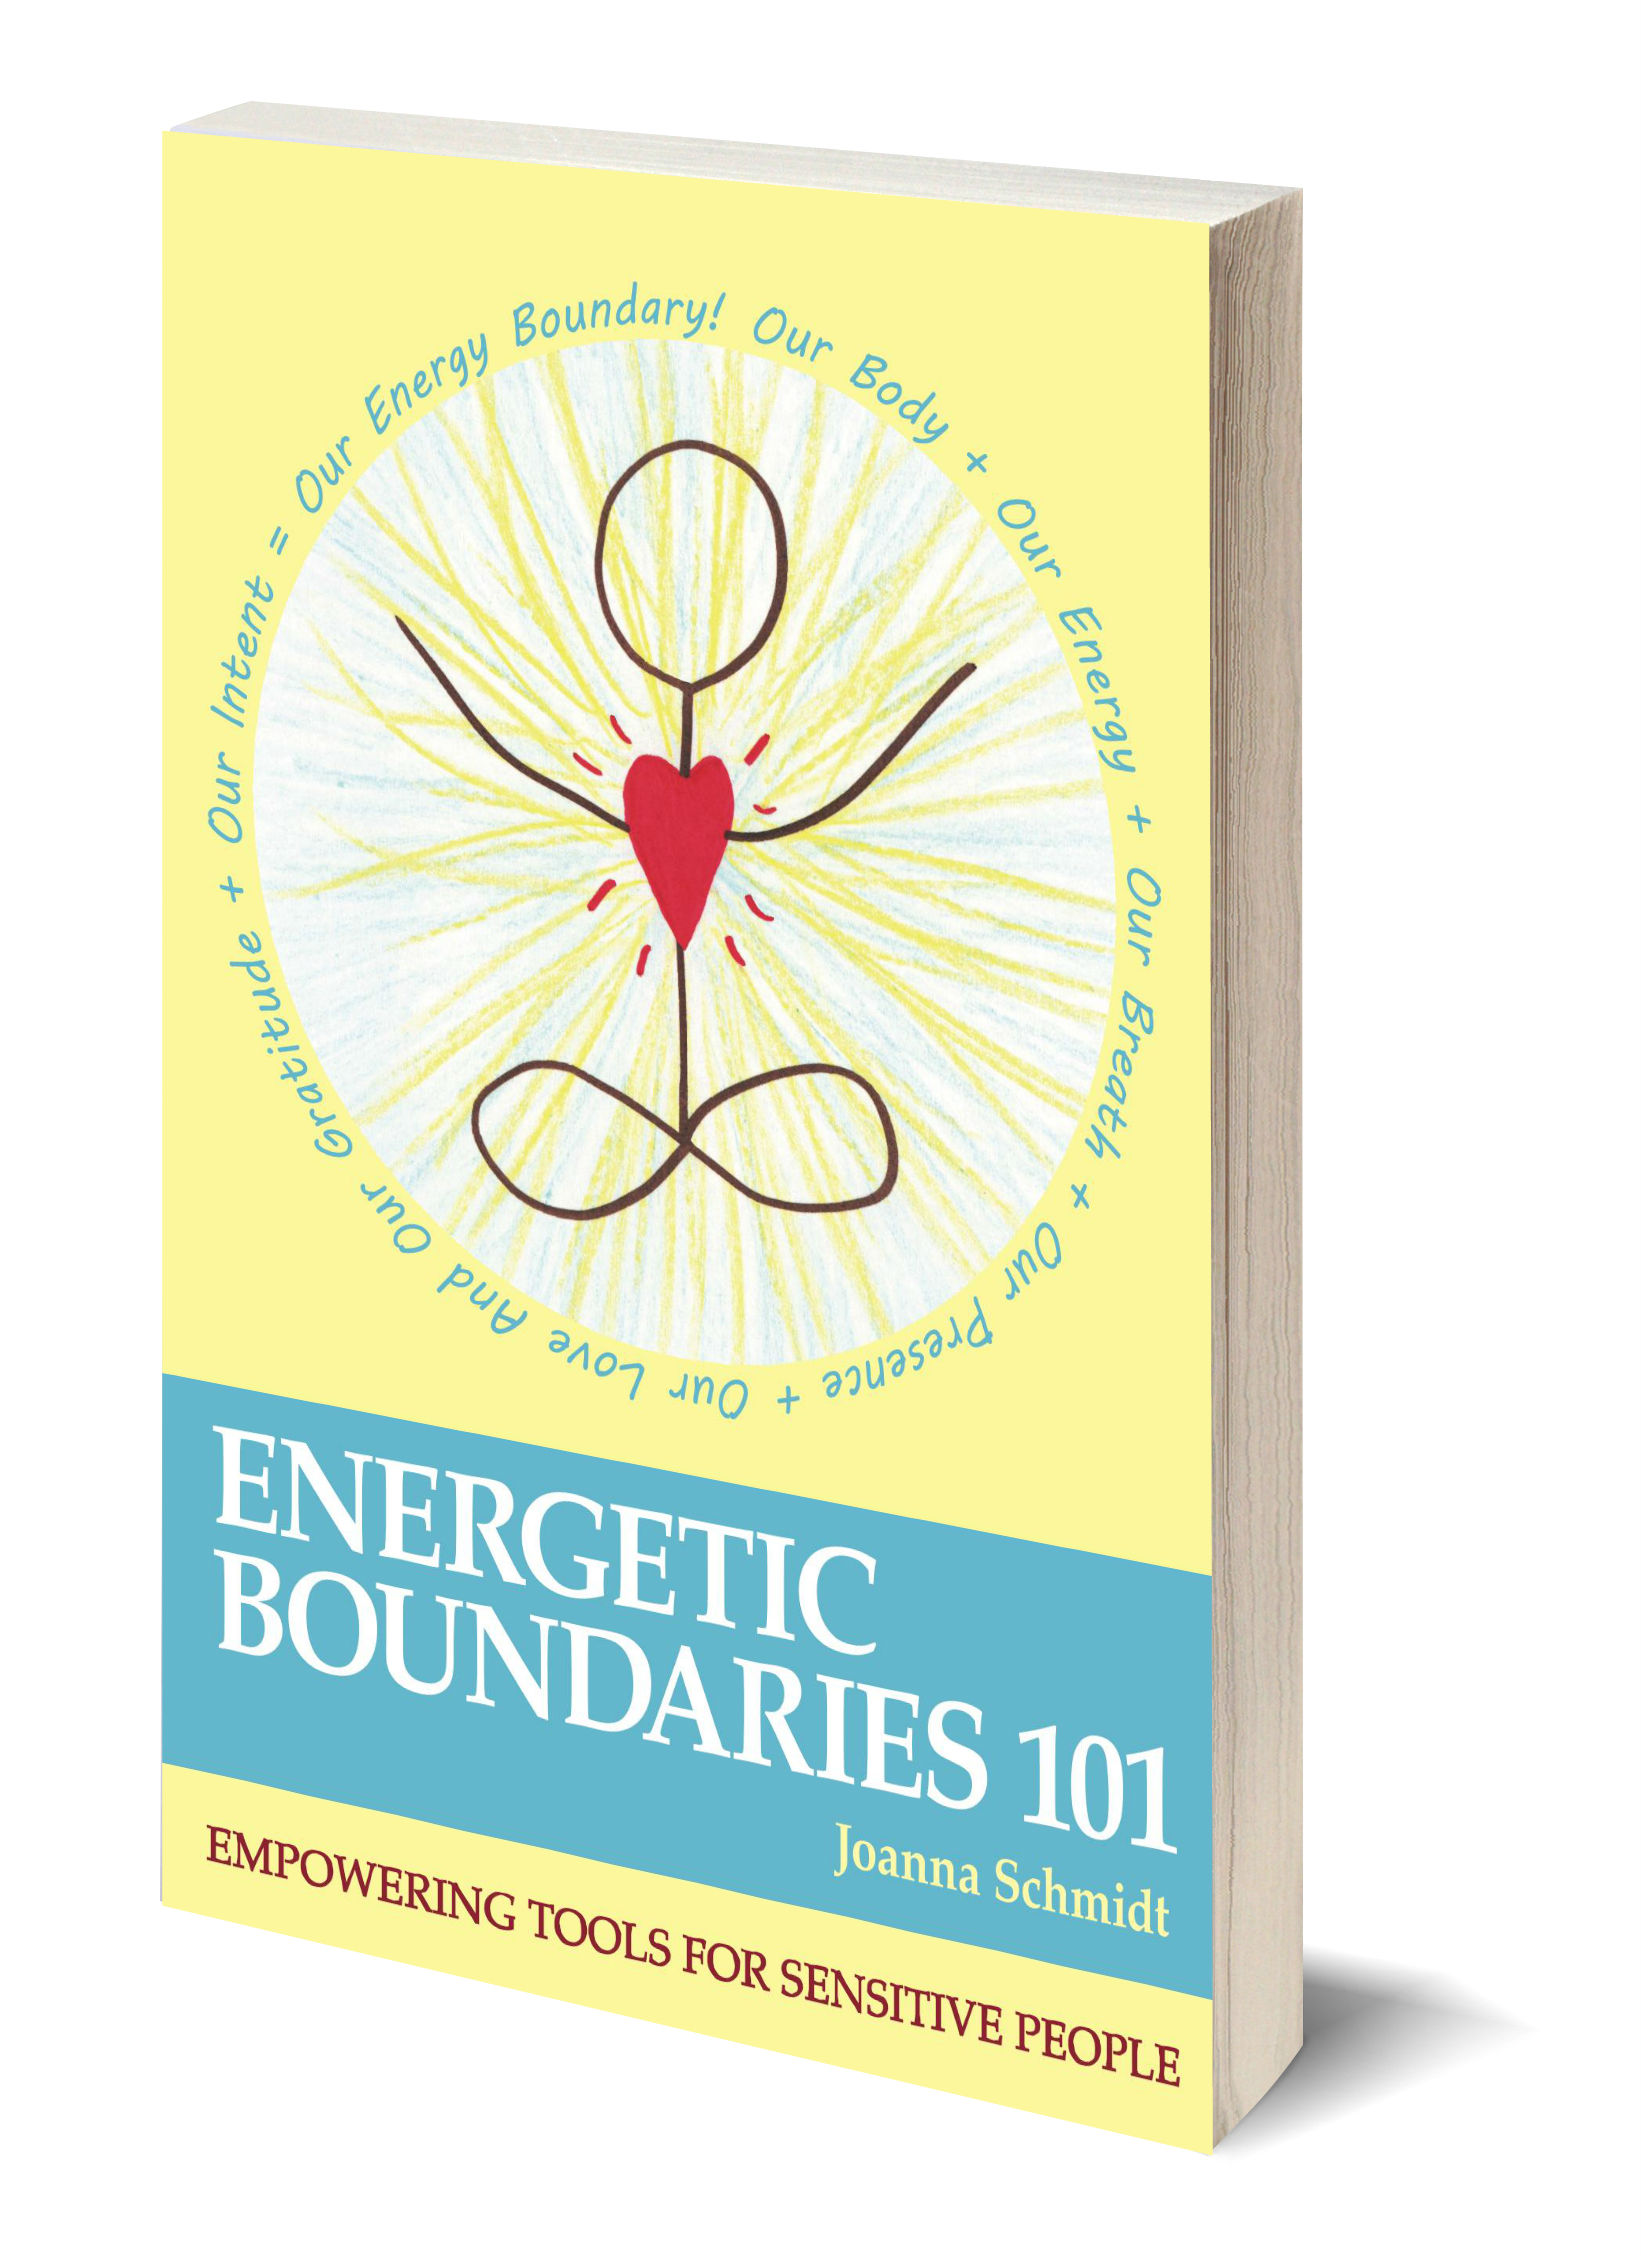 Energetic Boundaries 101